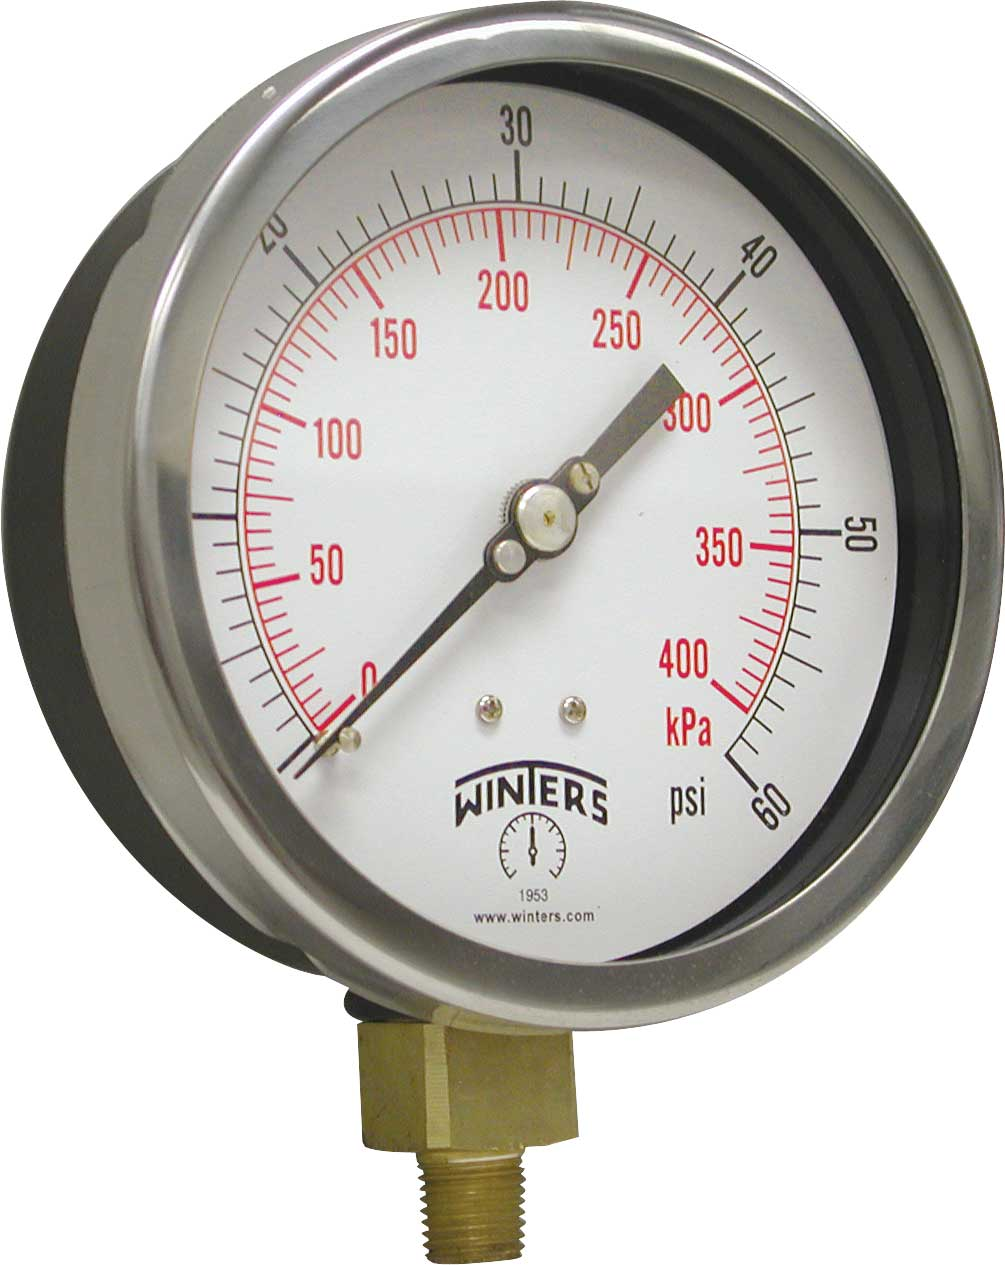 Fork Lift Gauge : Winters industrial gauges tierney dalton